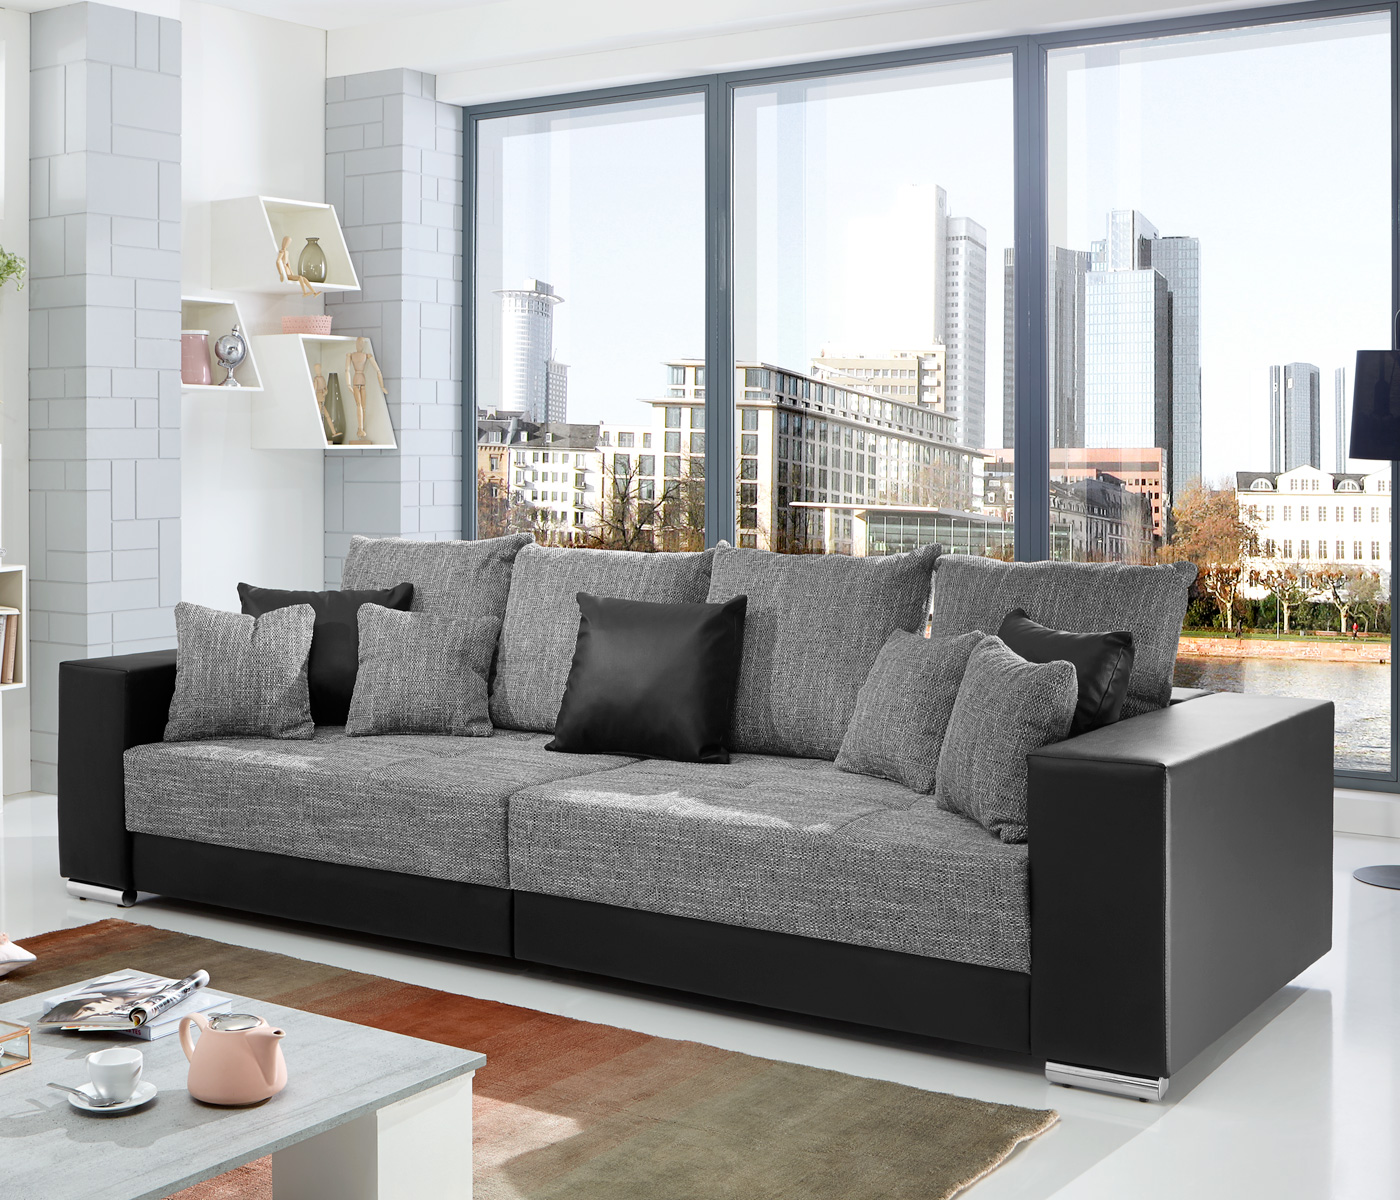 bigsofa adria big sofa wohnzimmer xxl couch stoffausf hrung oder materialmix ebay. Black Bedroom Furniture Sets. Home Design Ideas